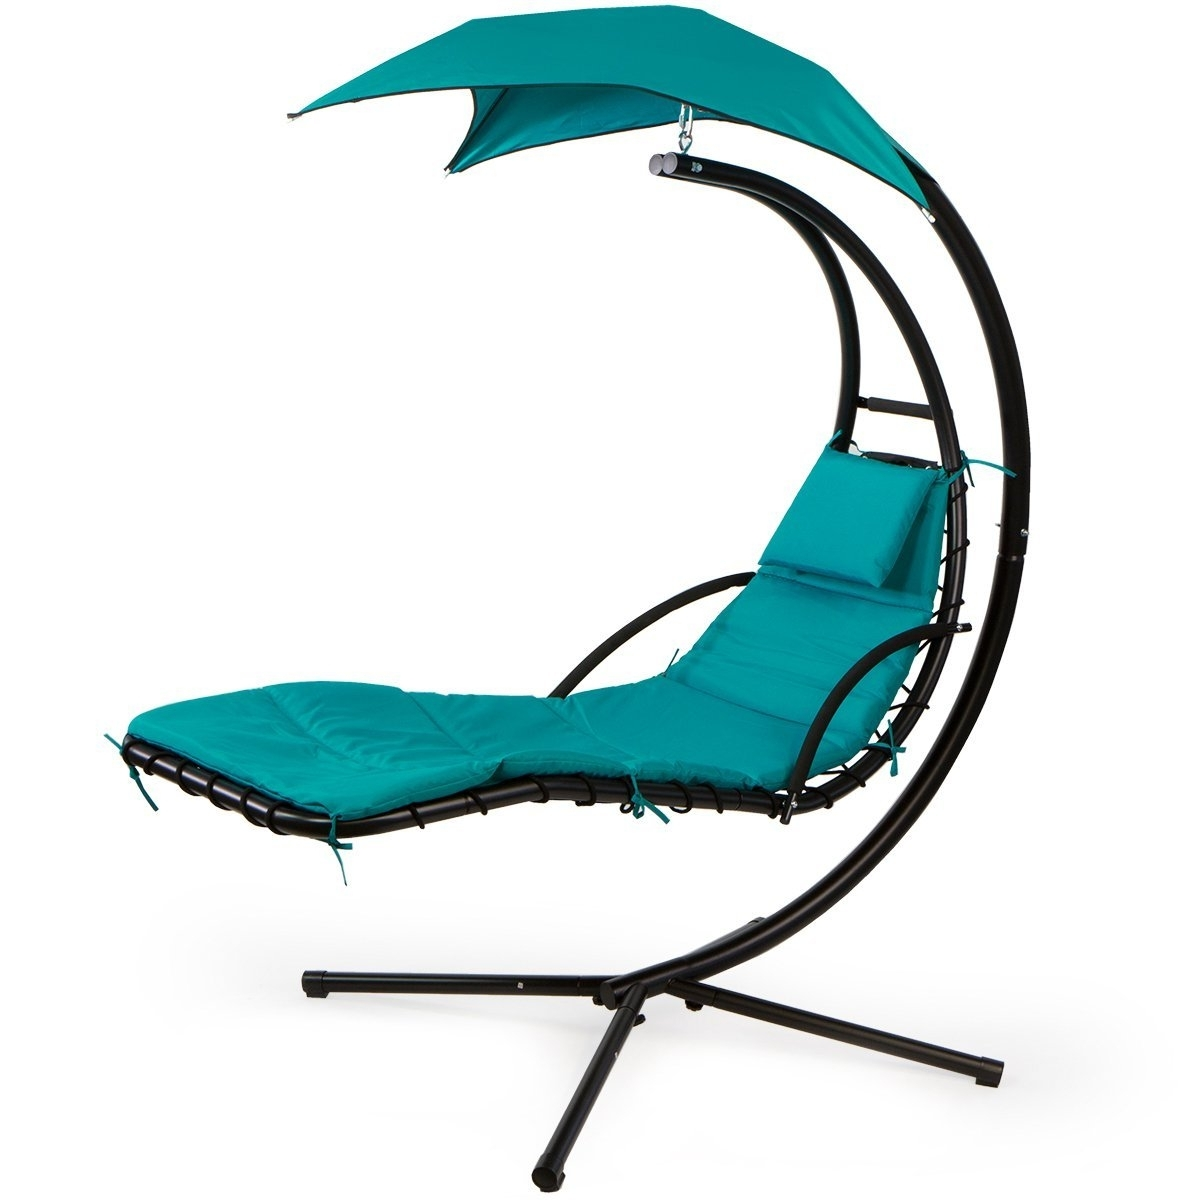 Amazon : Xtremepowerus Floating Swing Chaise Lounge Chair Within Preferred Floating Chaise Lounges (View 10 of 15)